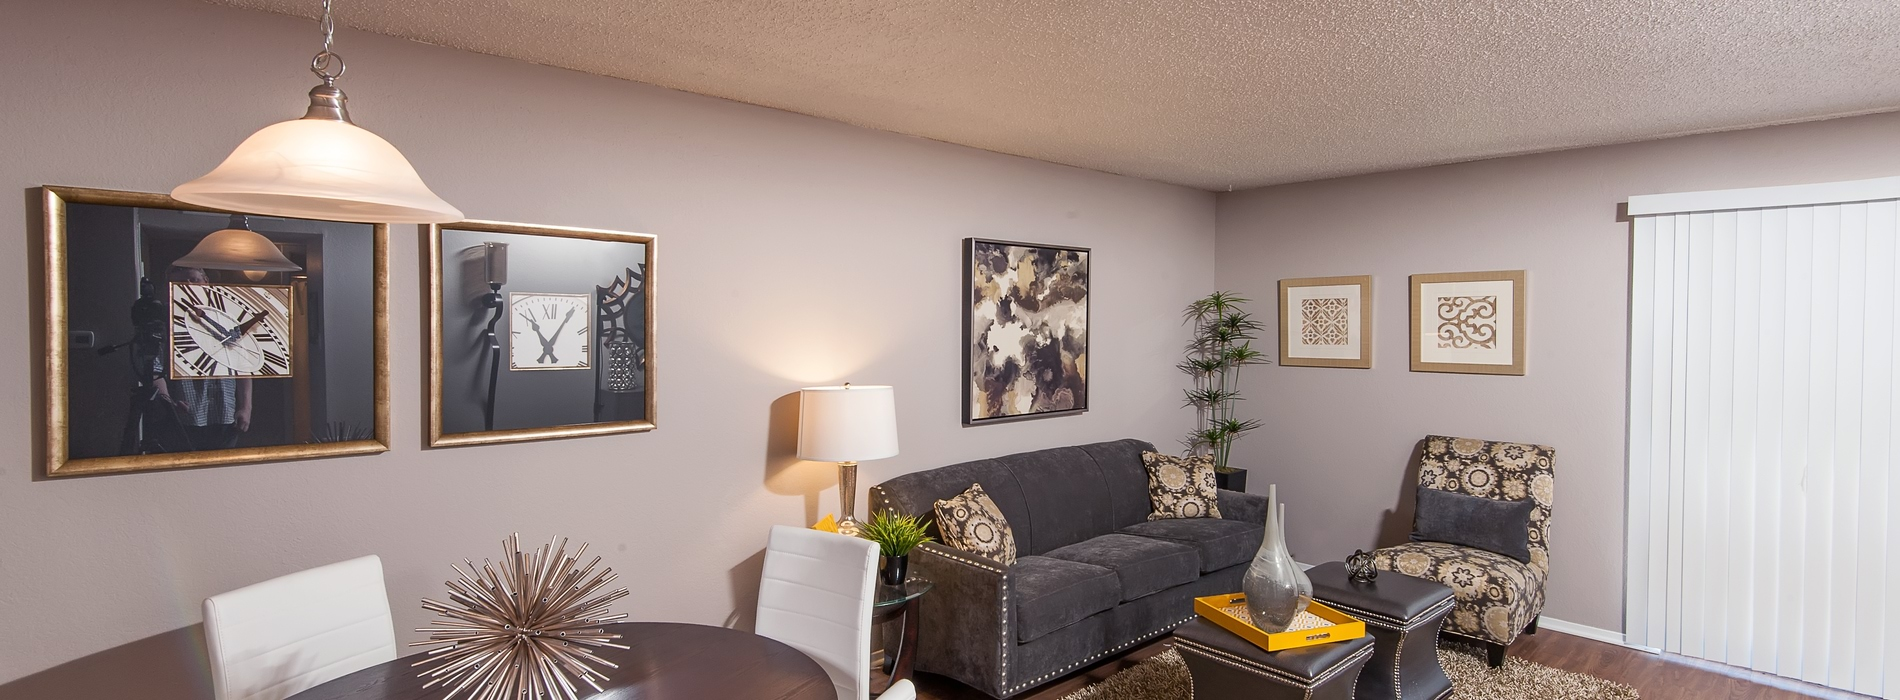 Apartments For Rent In Lewisville Tx Cottages On Edmonds Home